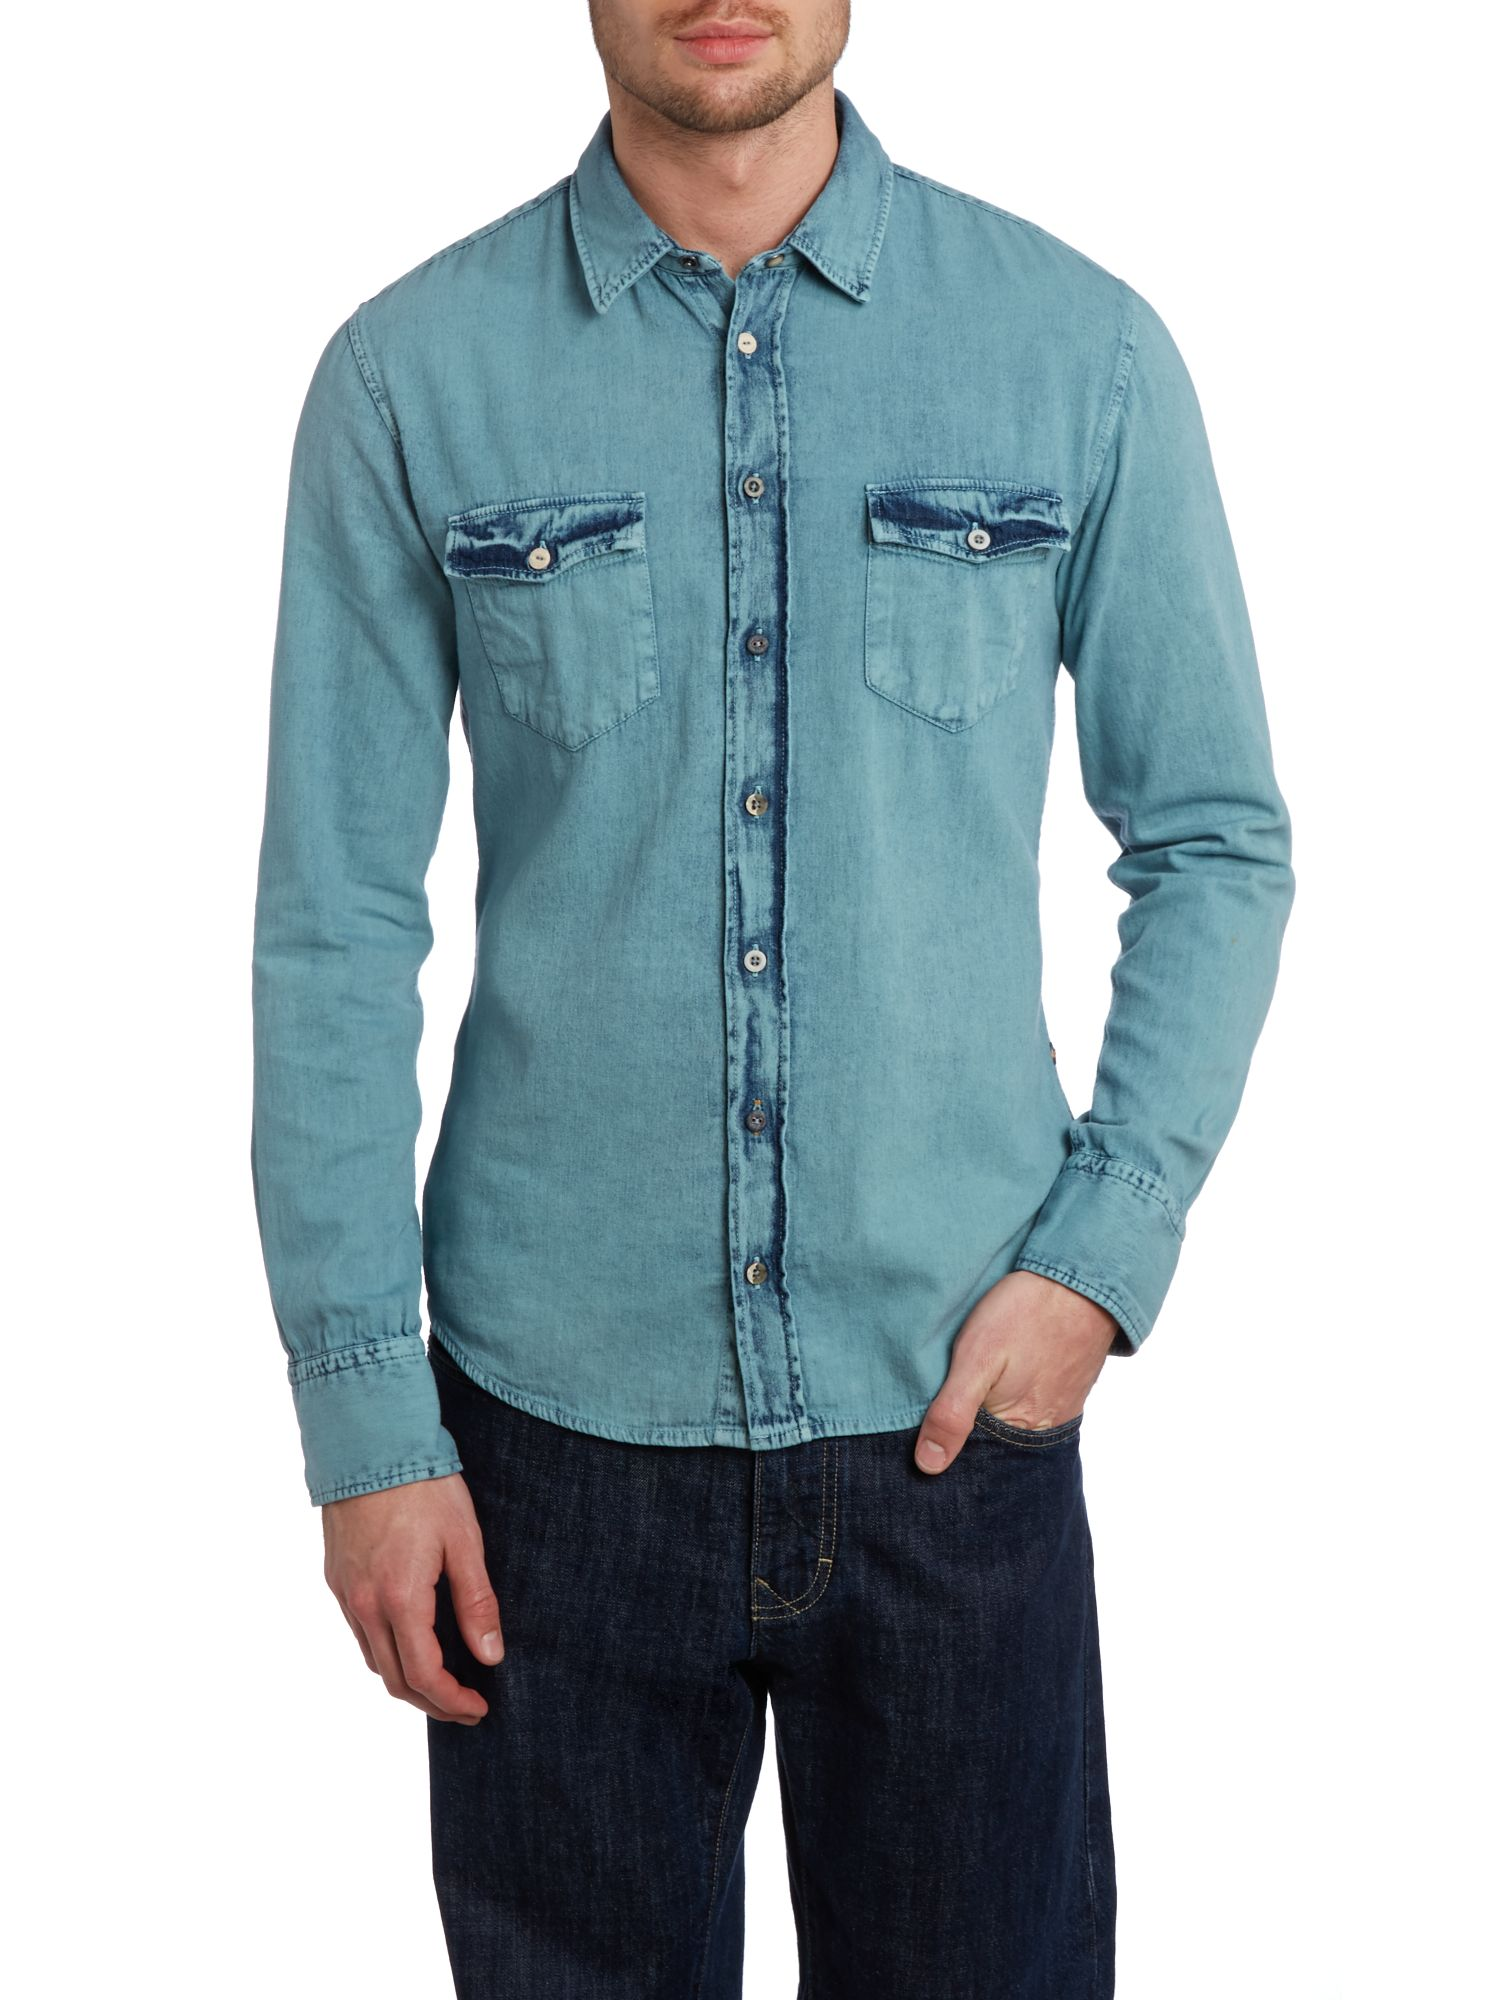 Long sleeve acid wash denim shirt